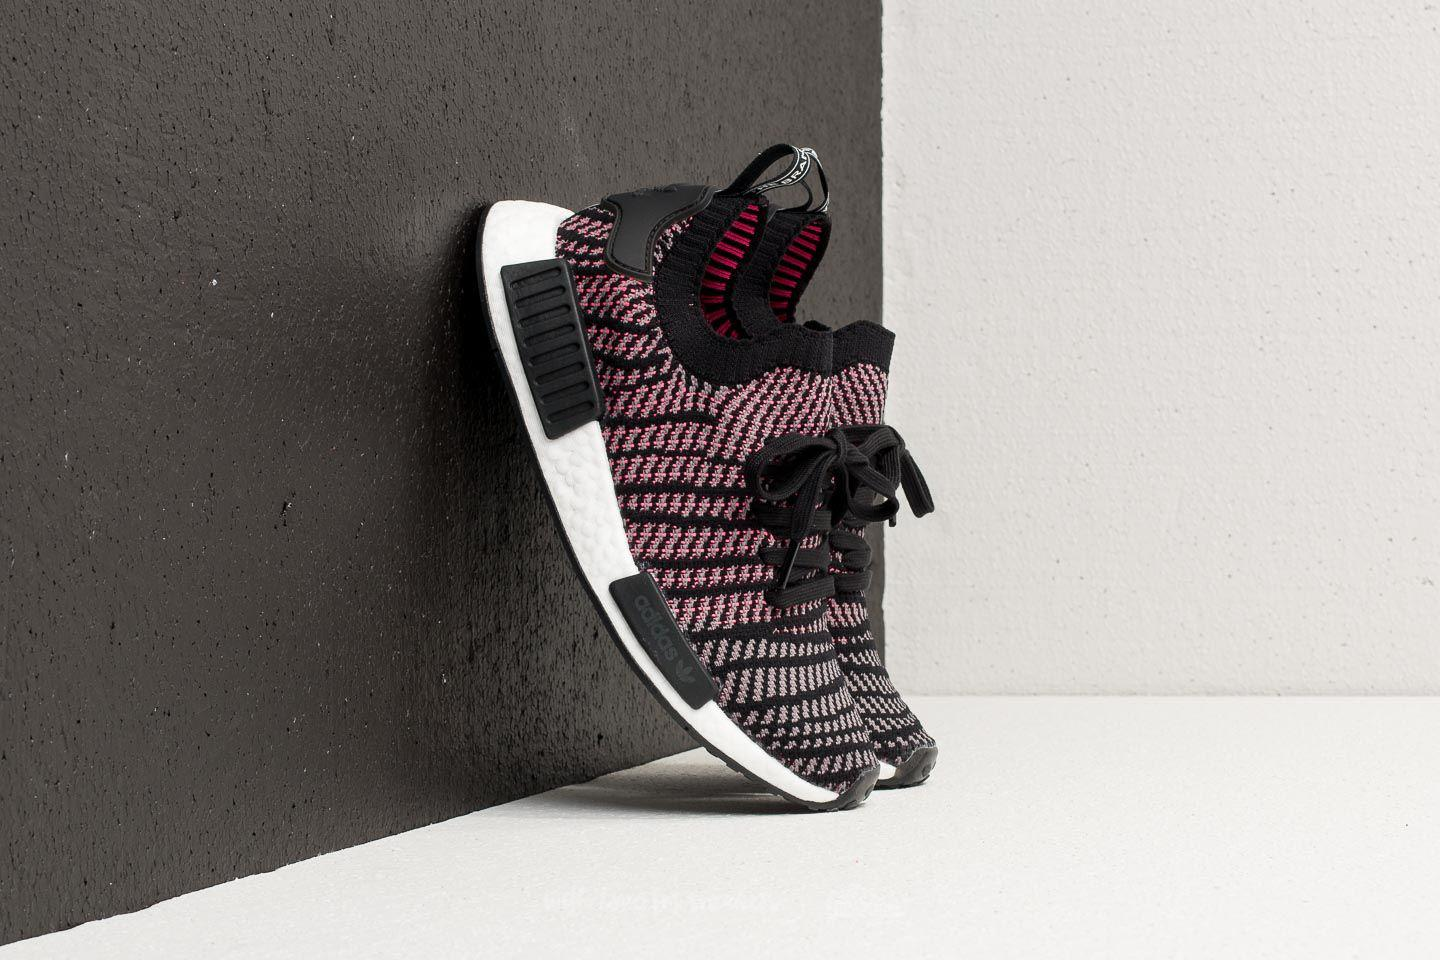 096df5c93 promo code womens adidas nmd xr1 w primeknit solid grey raw pink shoes  trainer uk sale 7a168 40409  discount code for adidas originals 3cfbf bb405